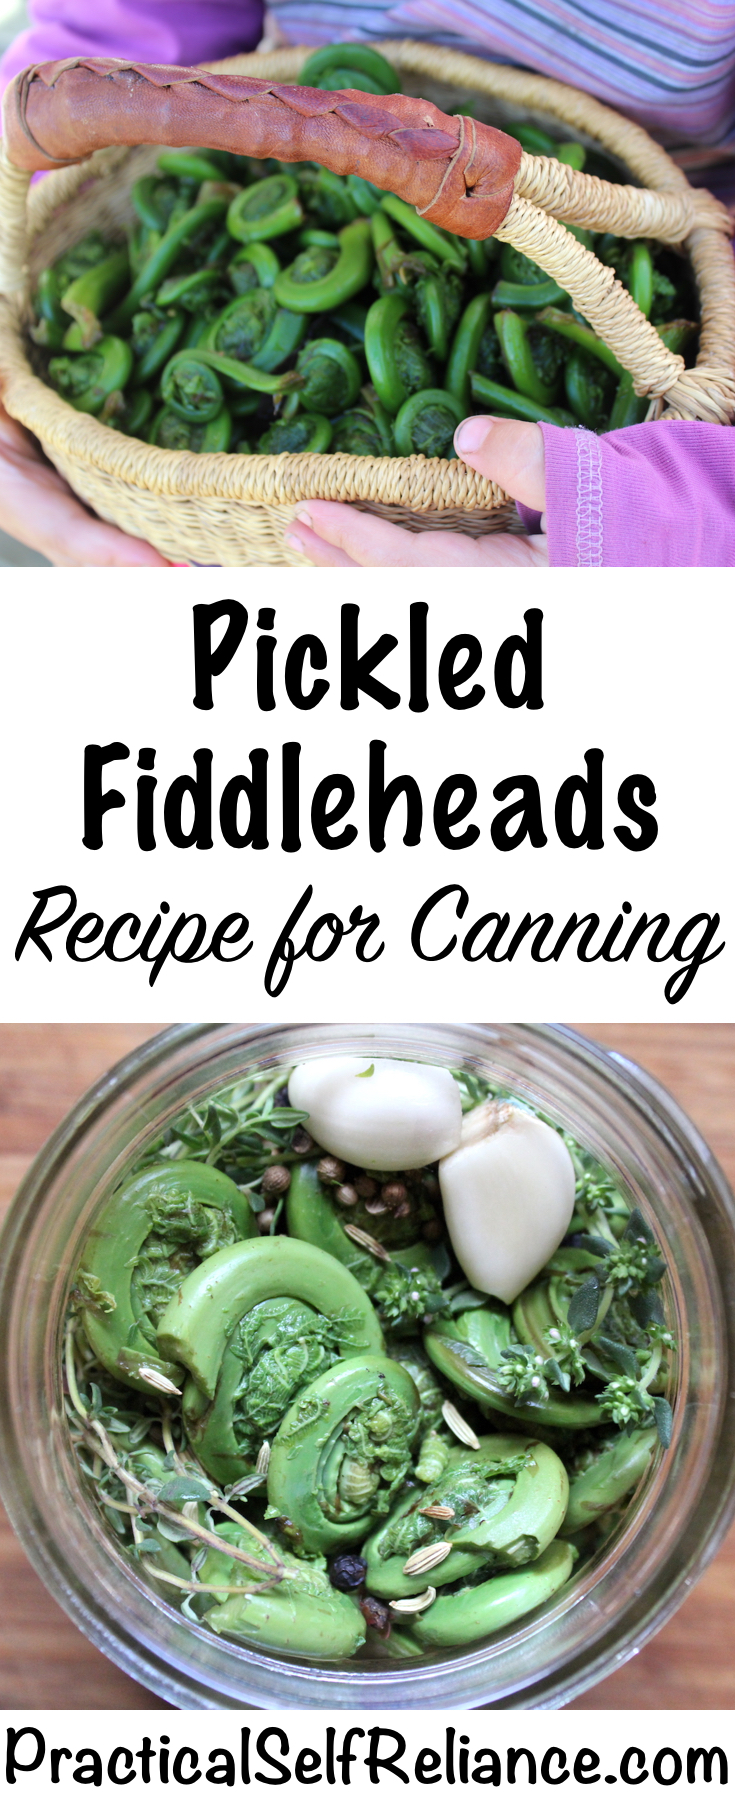 Pickled Fiddleheads ~ Recipe for Canning